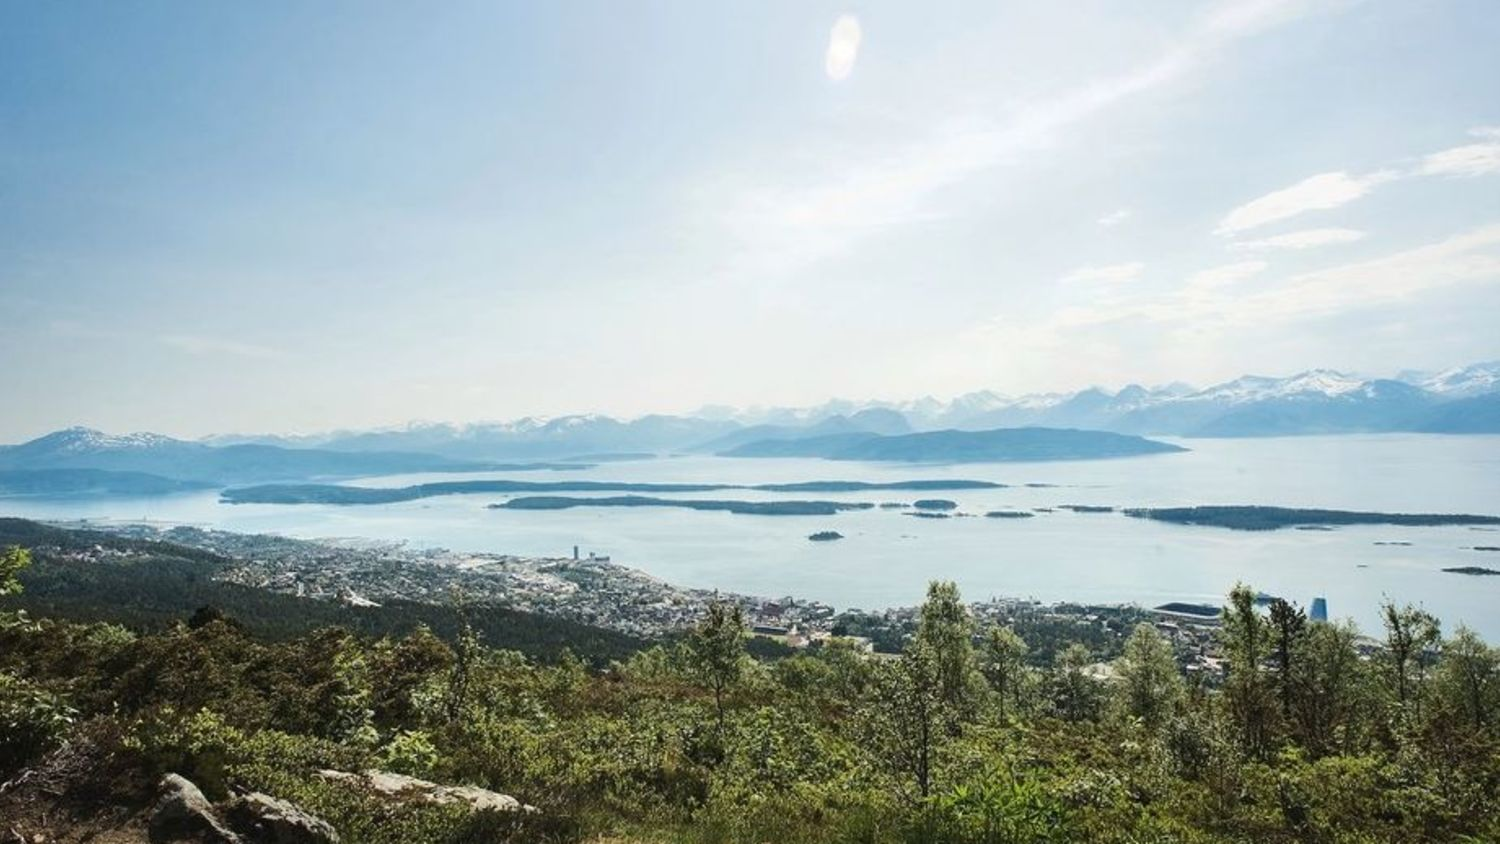 Molde seen from the mountain.